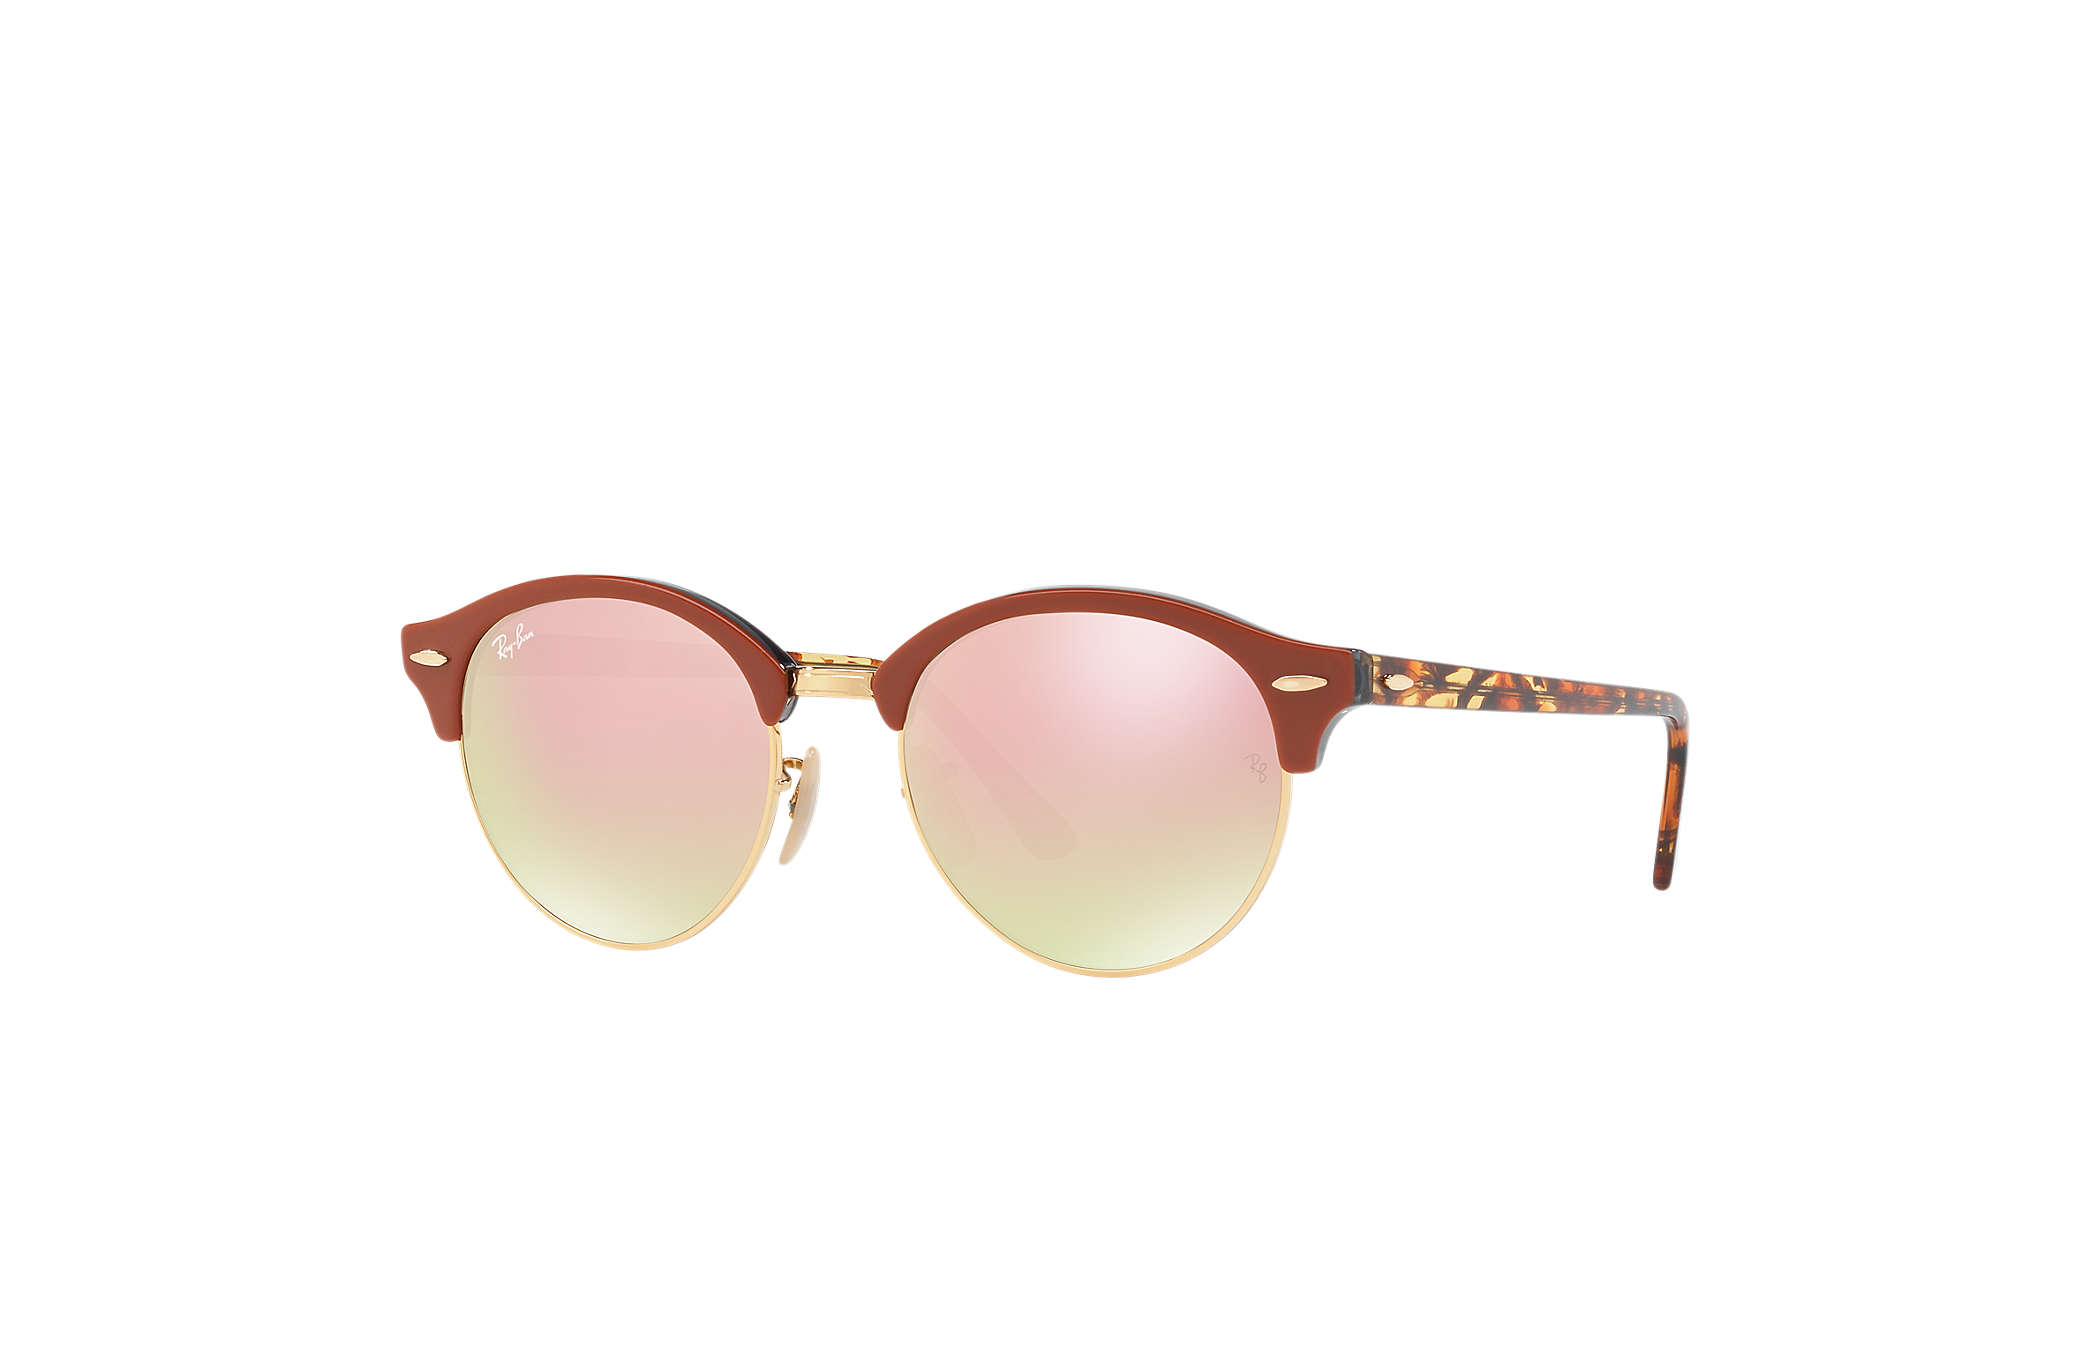 e5aa706177 Ray-Ban Clubround Flash Lenses RB4246 Brown - Acetate - Copper ...